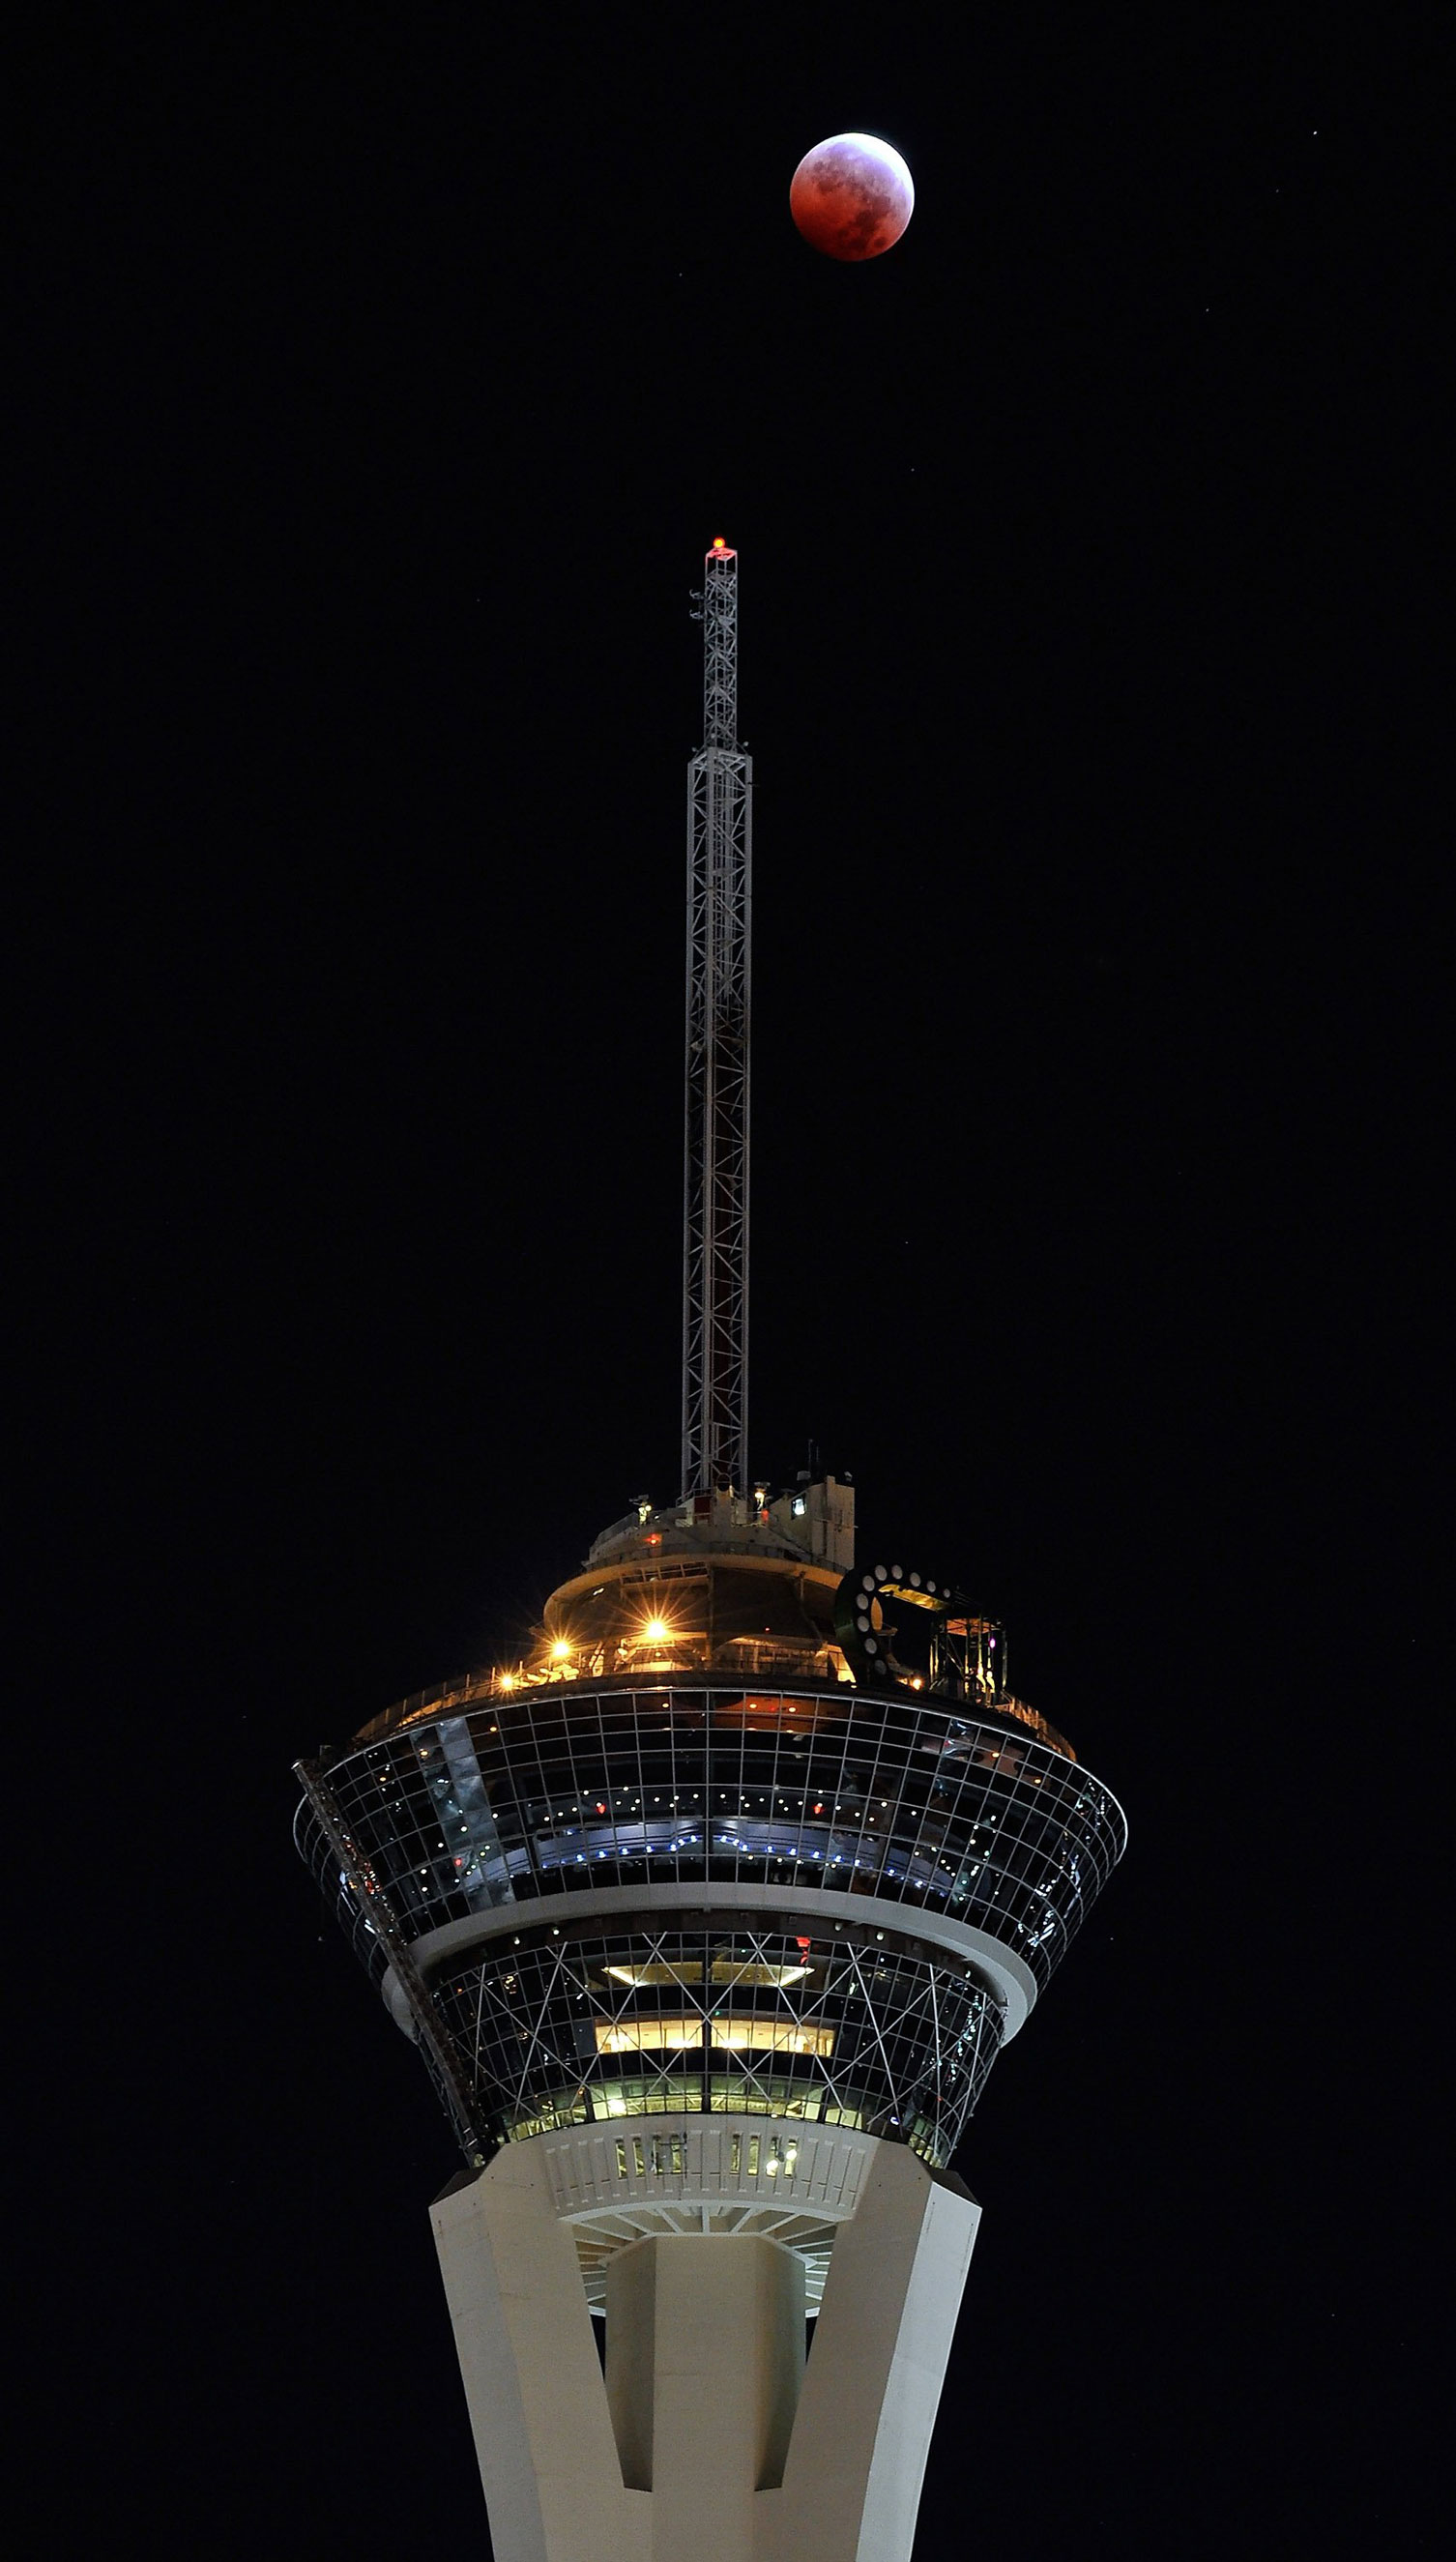 The moon during a total lunar eclipse above the Stratosphere Tower in Las Vegas on Oct. 8, 2014.